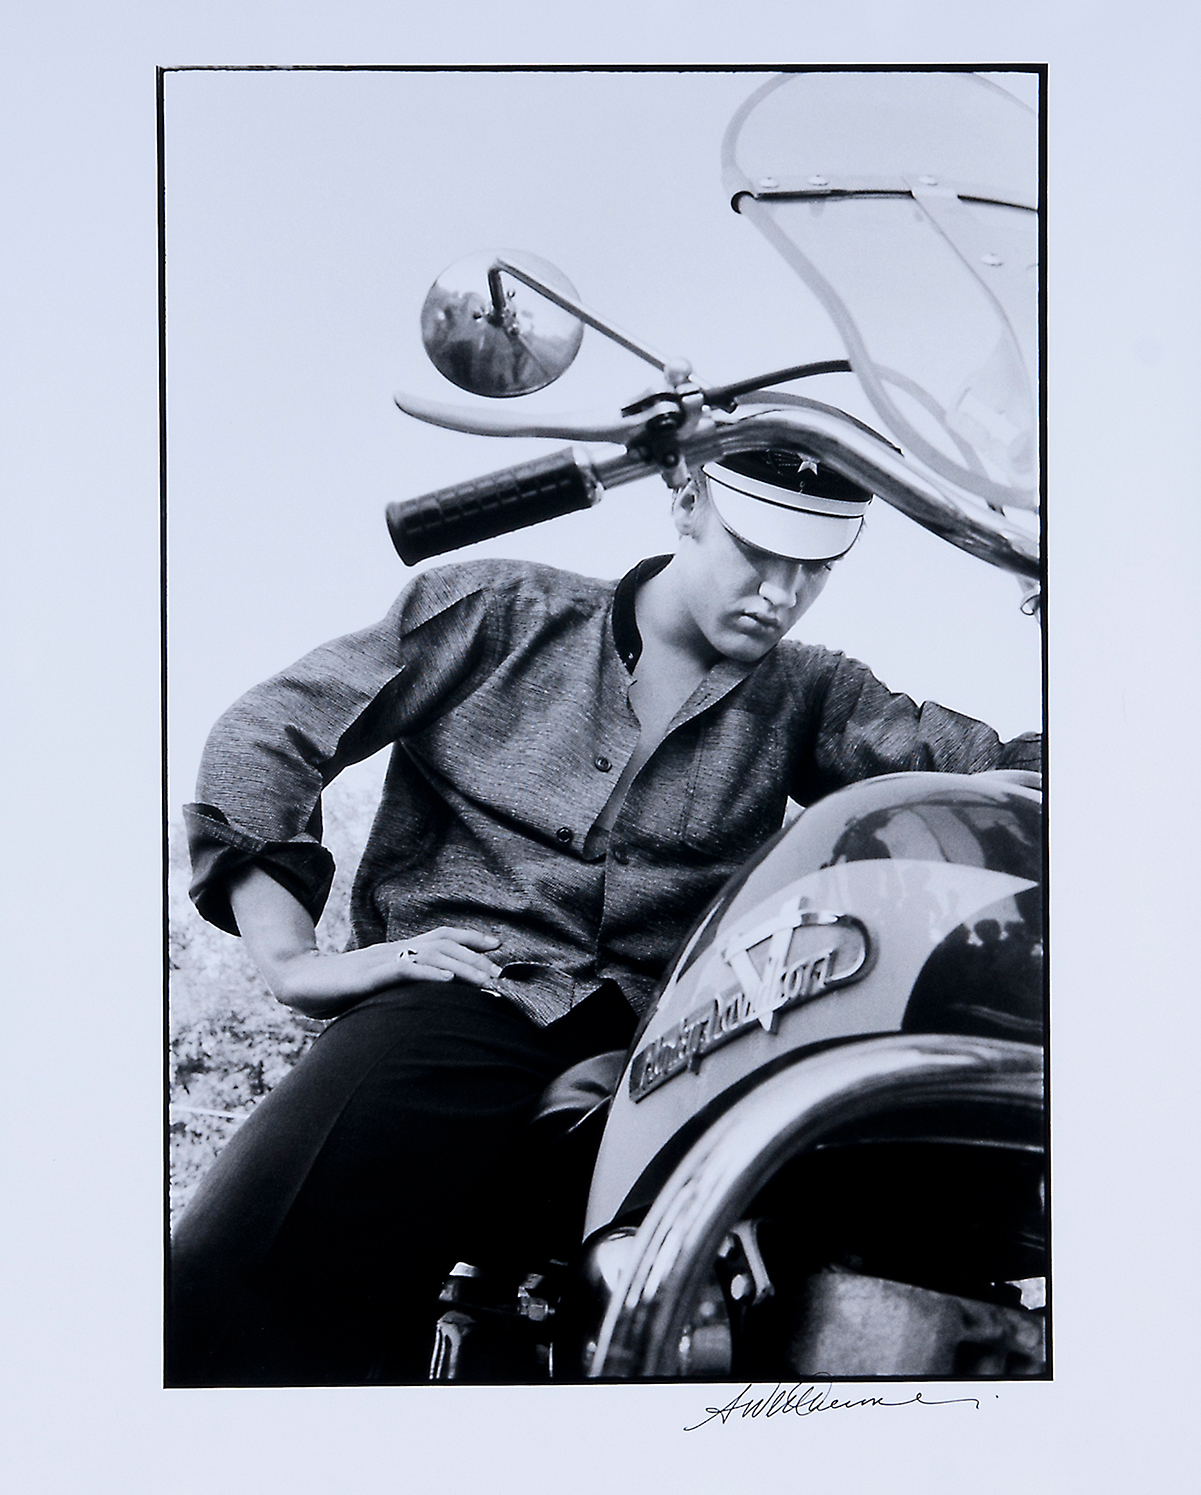 Musician Elvis Presley sits on a motorcycle.